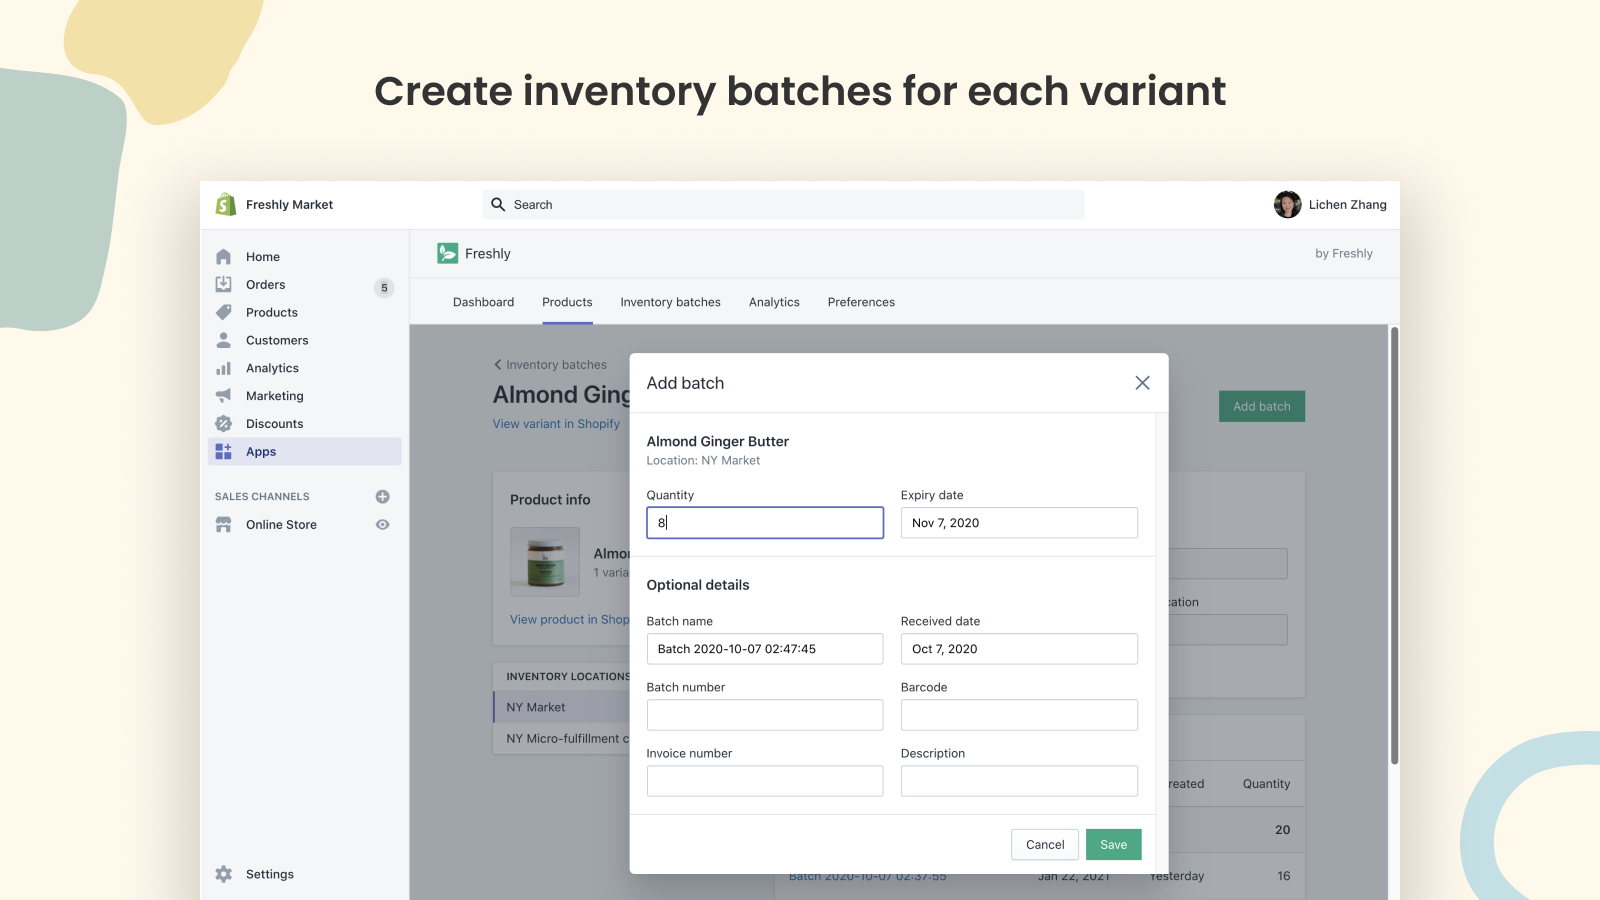 Create inventory batches for each variant